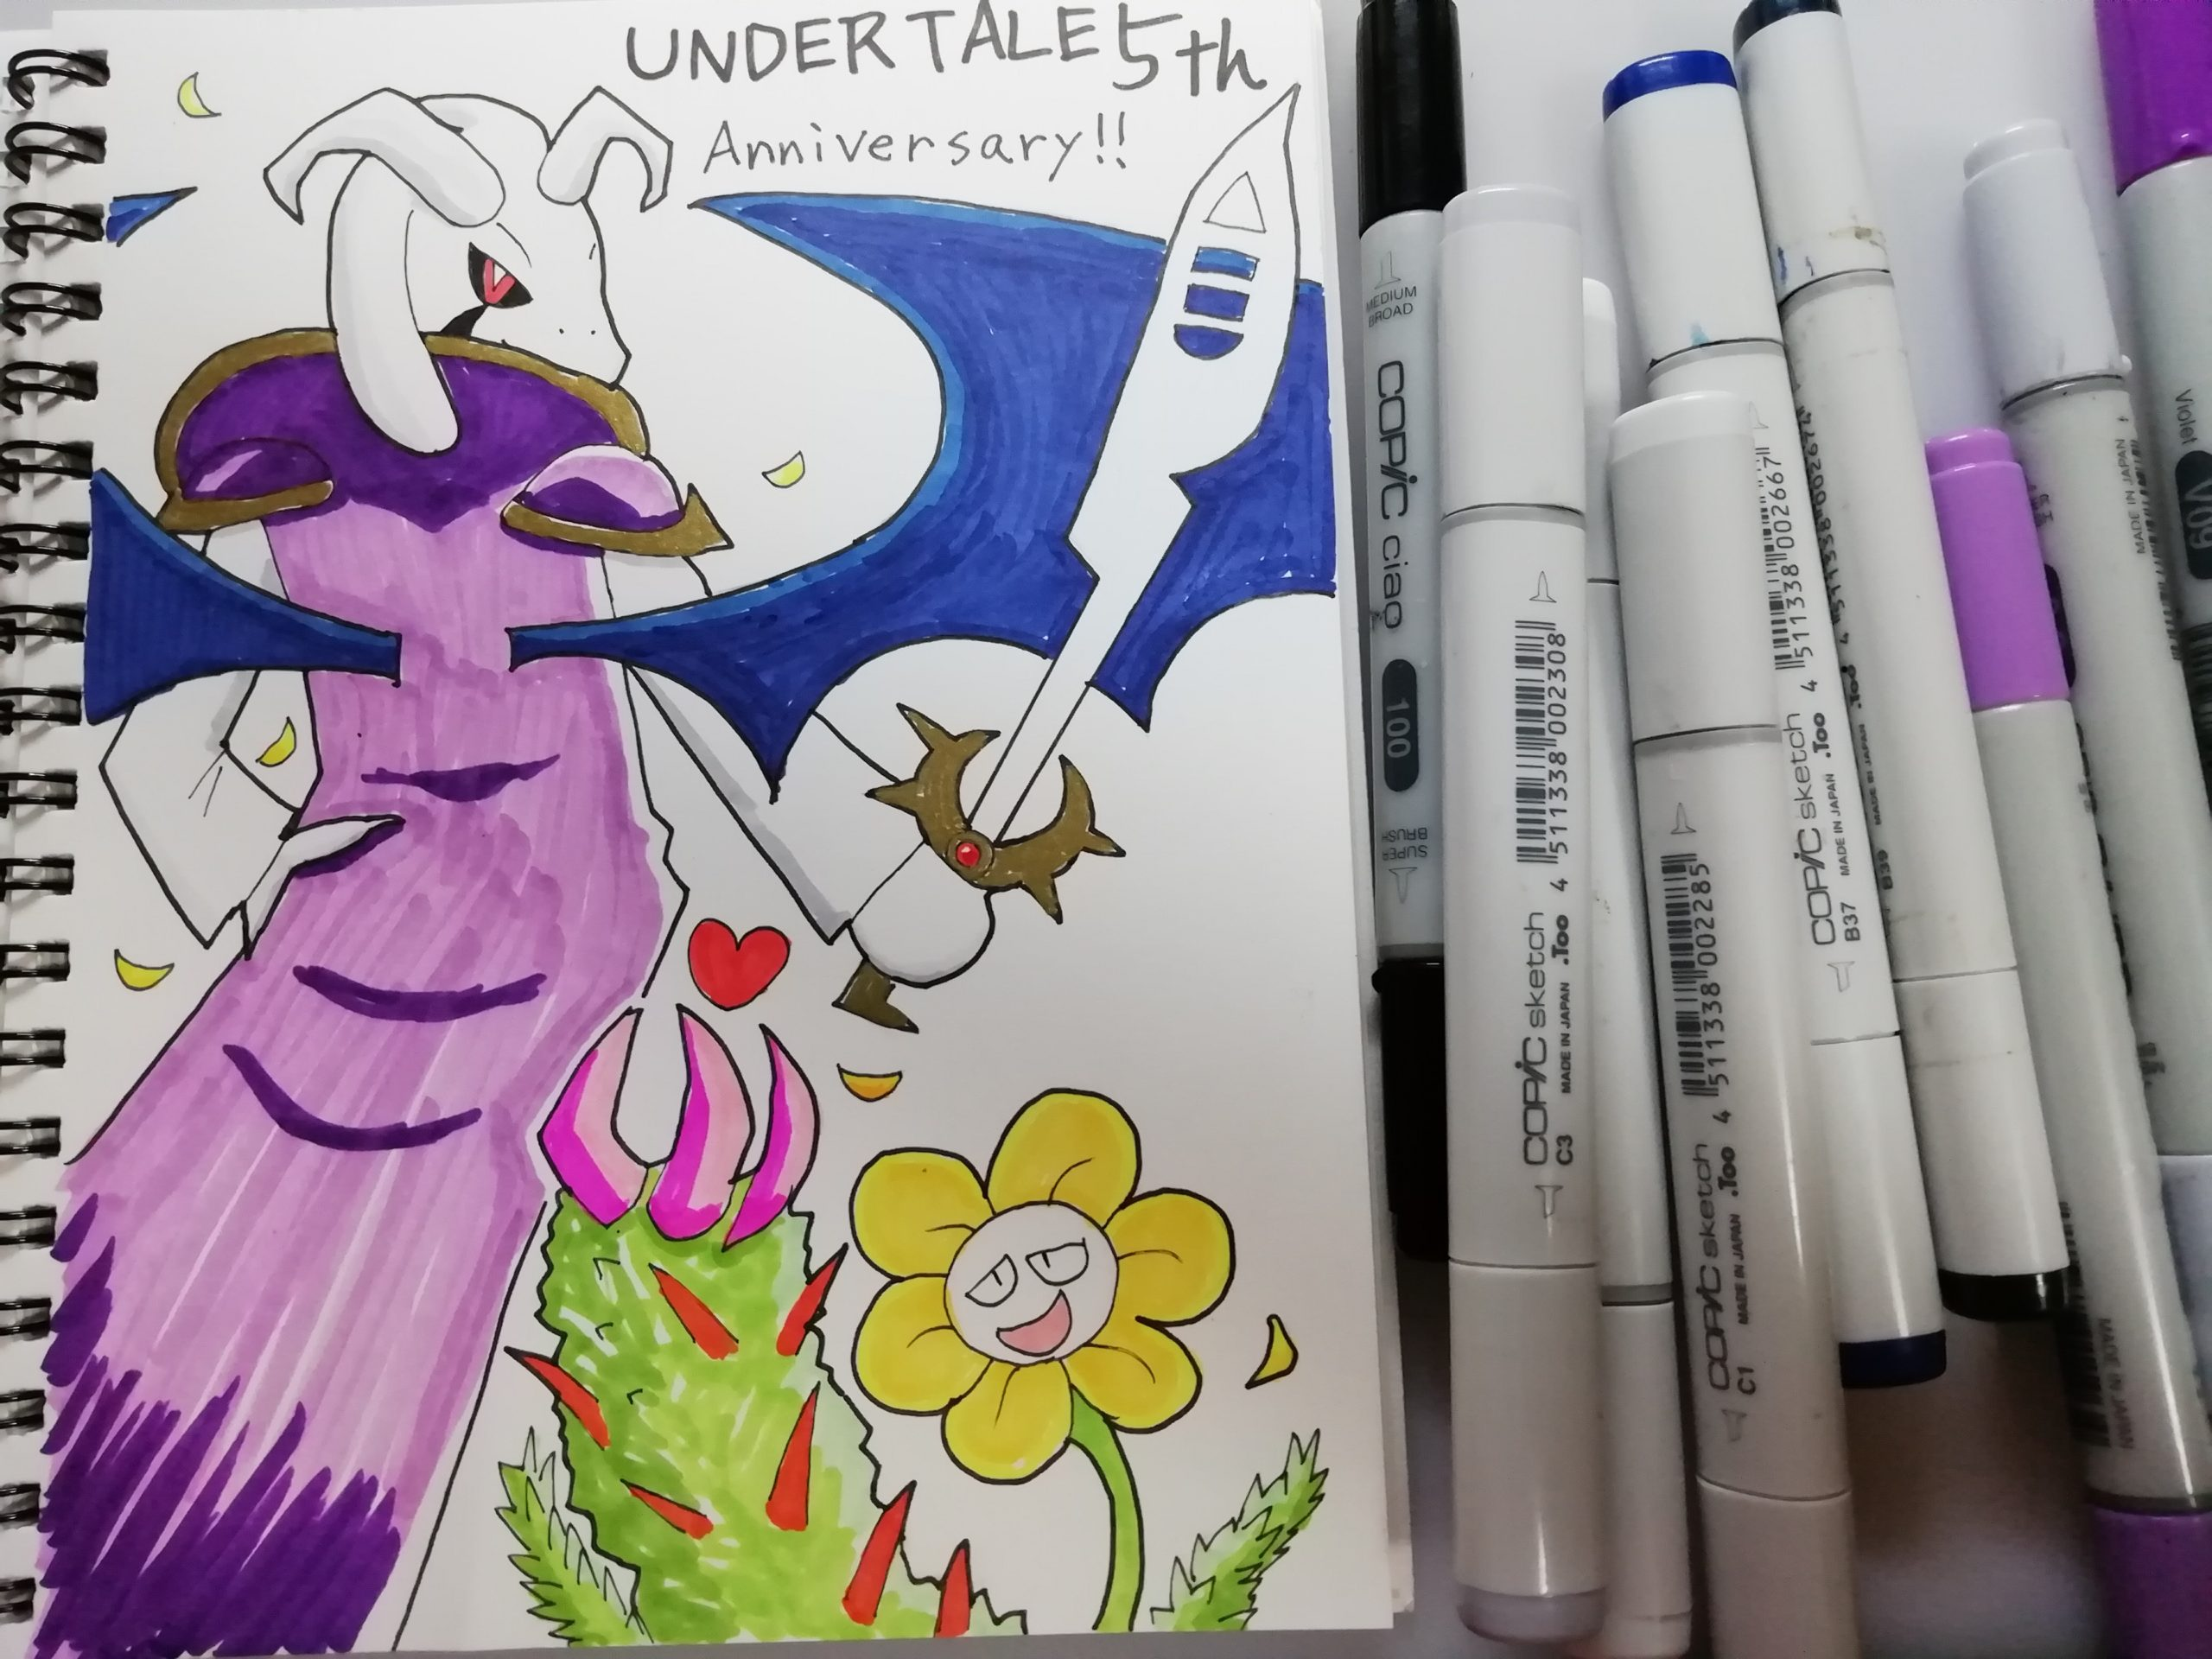 undertale5th記念絵